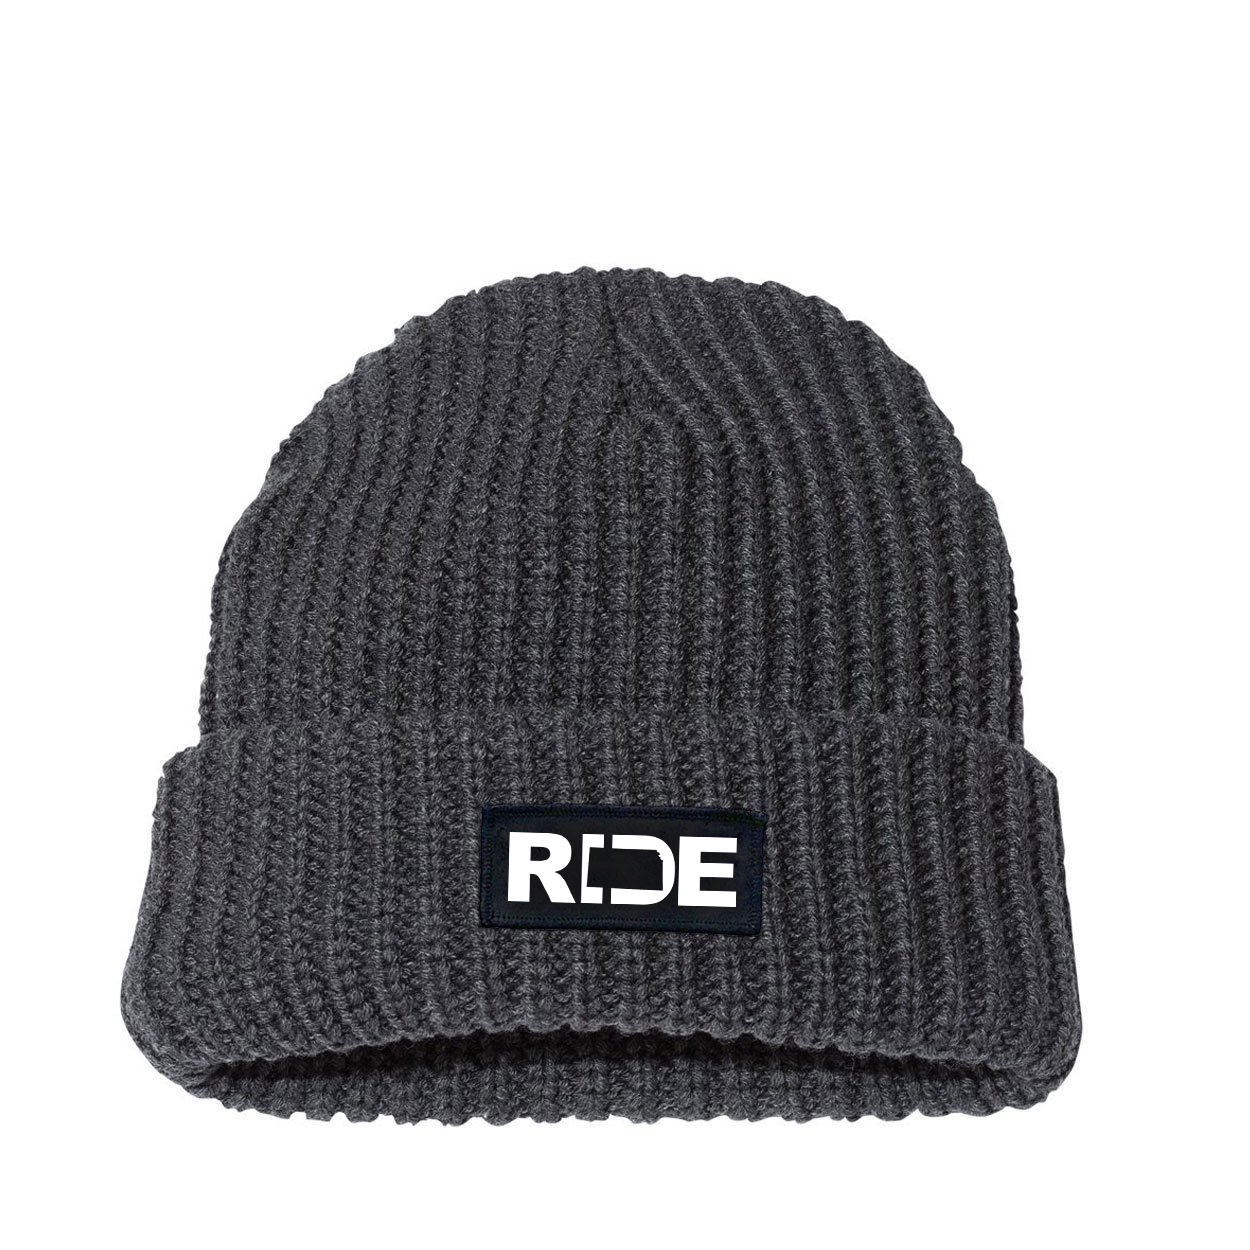 Ride Kansas Night Out Woven Patch Roll Up Jumbo Chunky Knit Beanie Charcoal (White Logo)